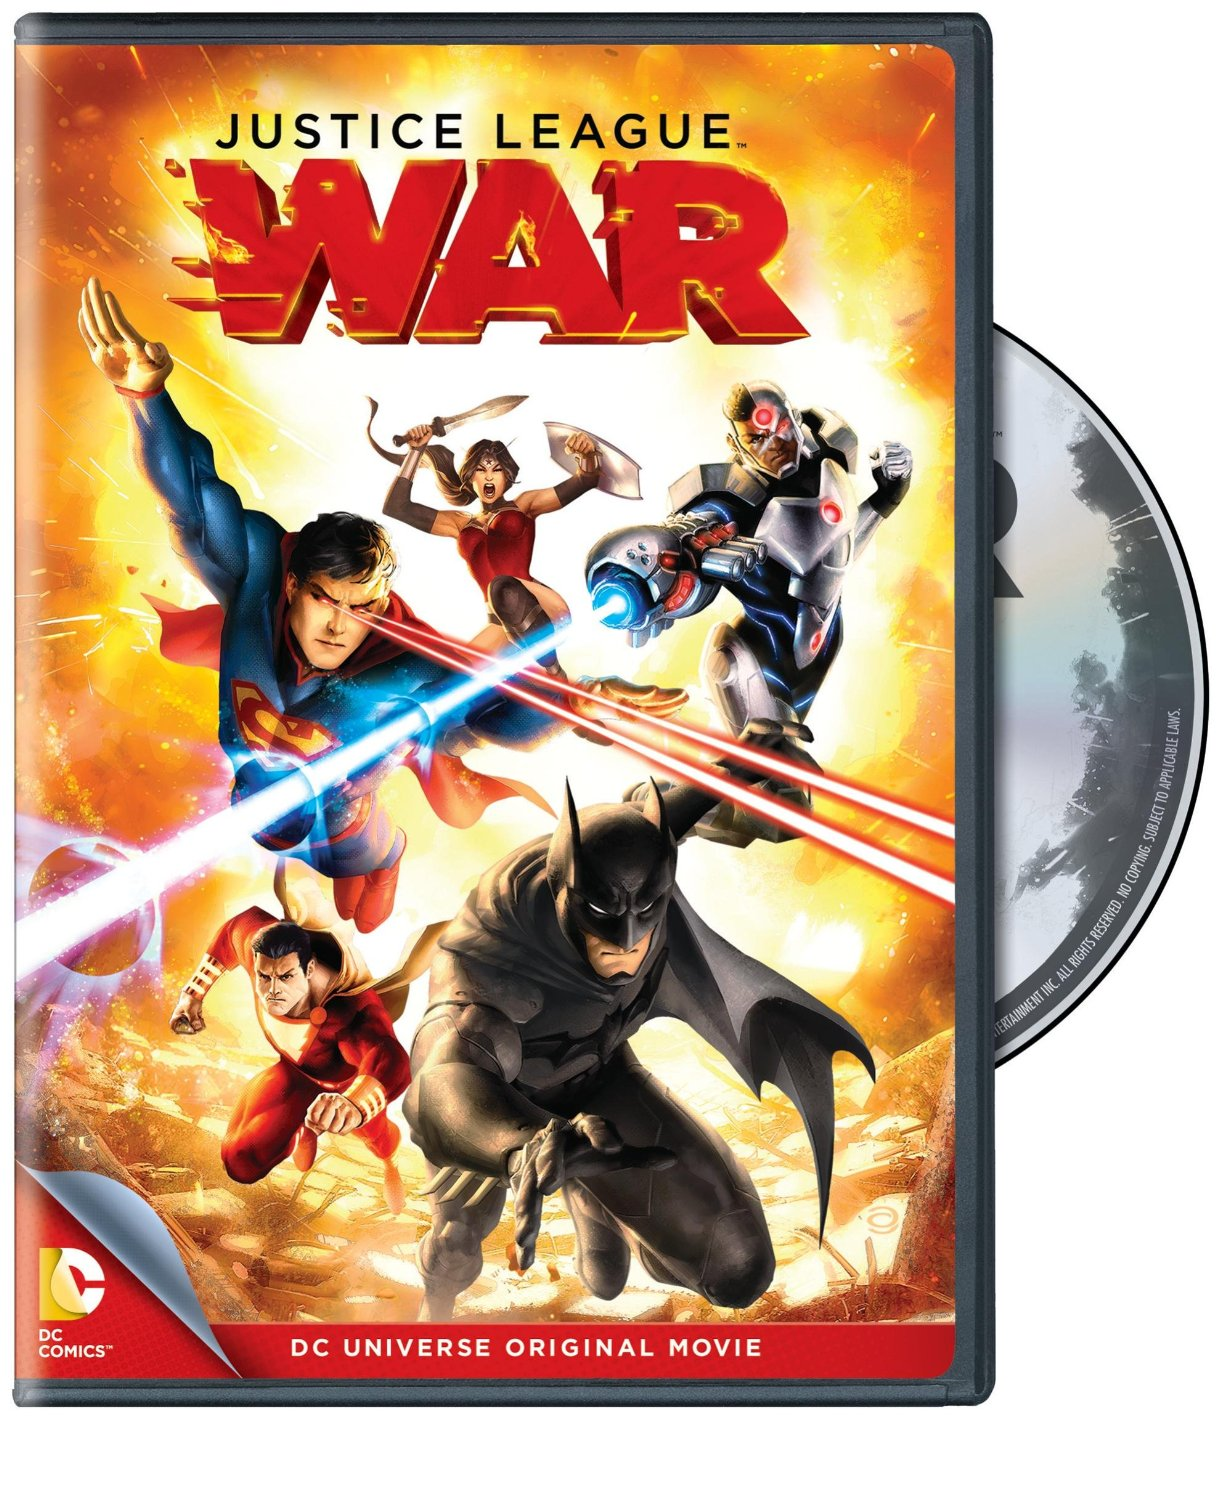 Justice League: War - a revamped origin for the Justice League, starring Superman, Batman, Wonder Woman, Captain Marvel (Shazam), the Flash, Green Lantern and Cyborg